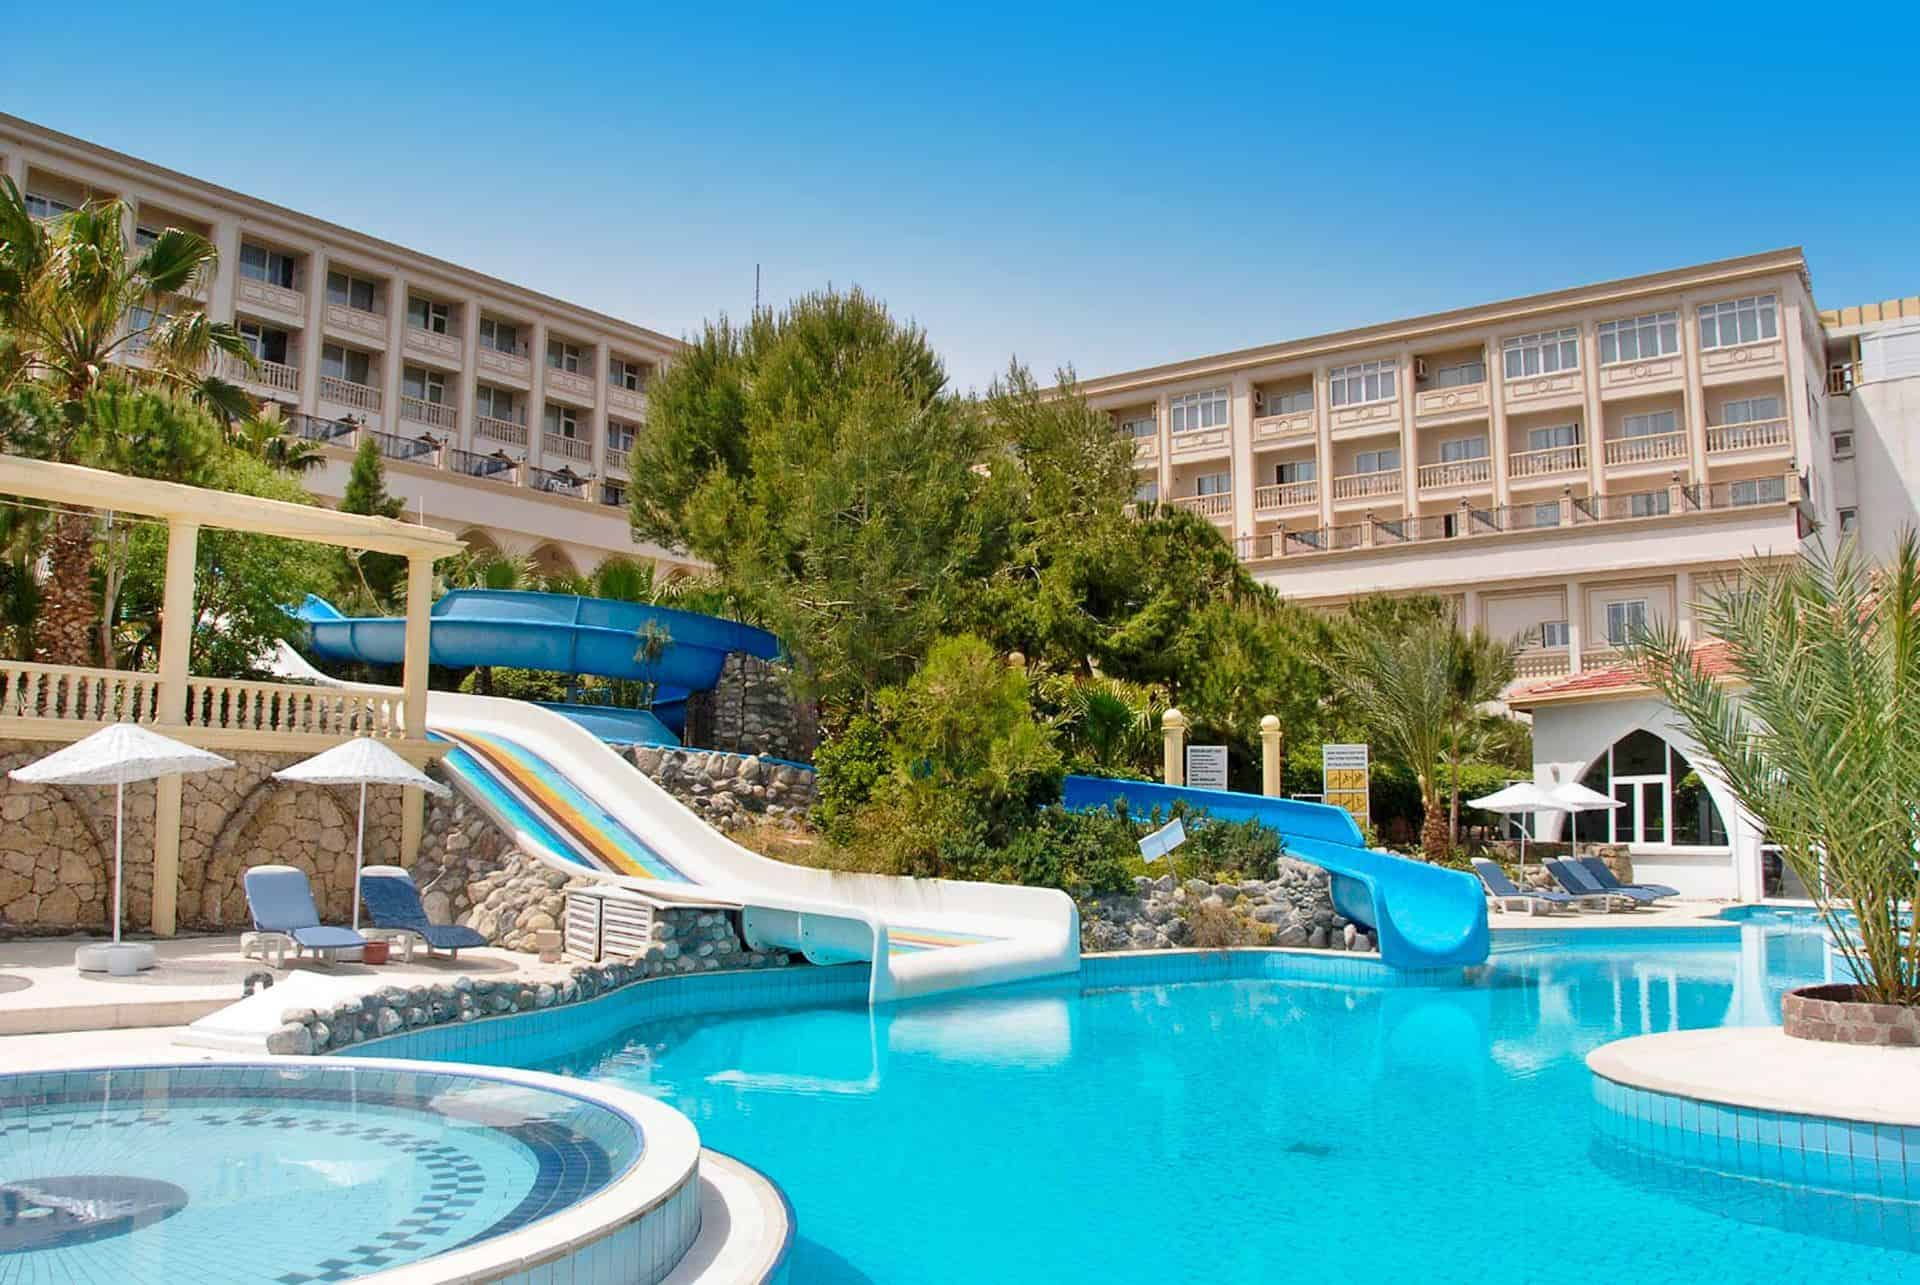 Oscar Resort in Kyrenia, Cyprus